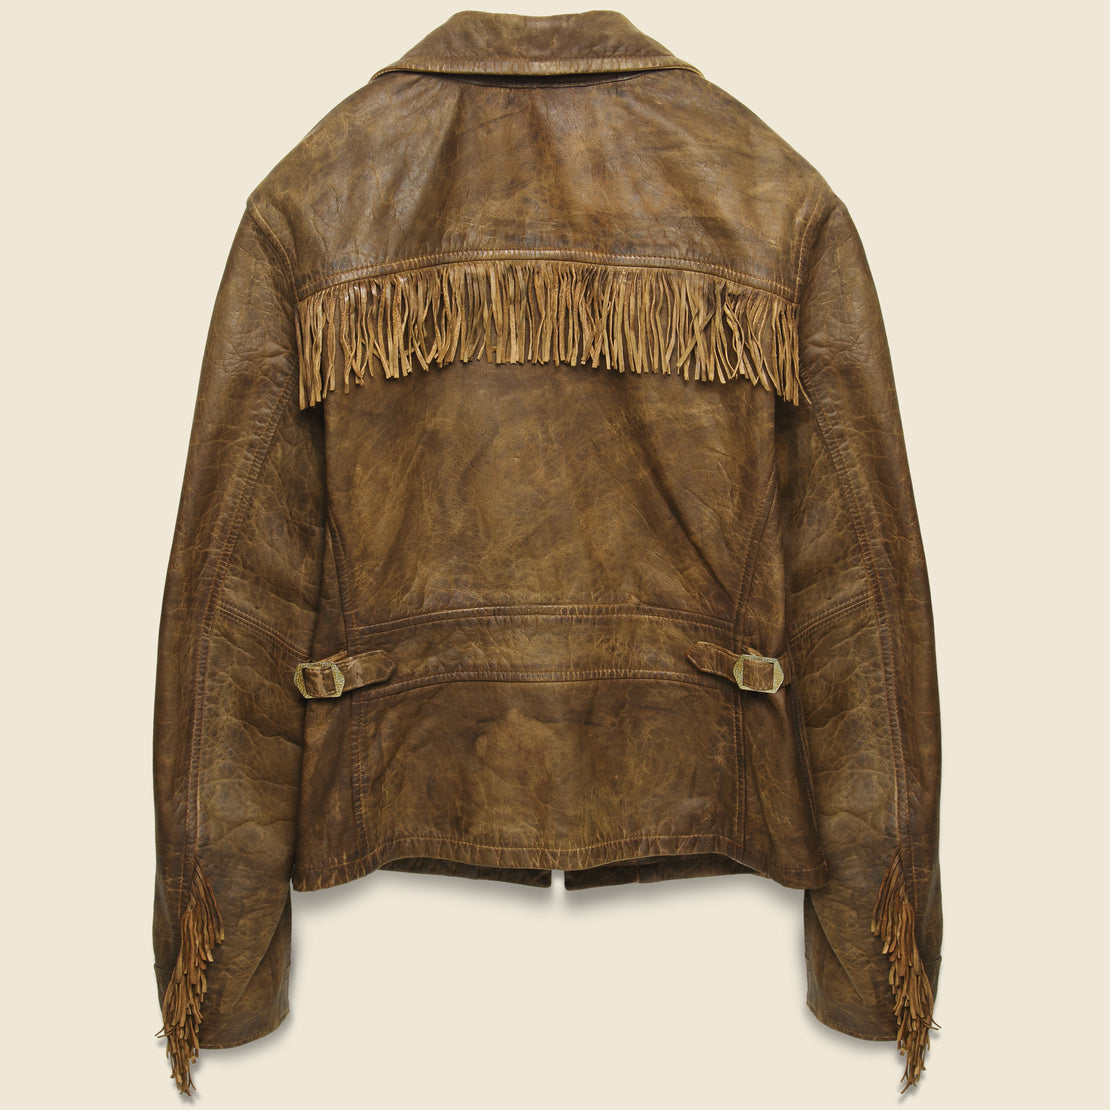 Fringe Leather Cowhide Jacket - Medium Brown